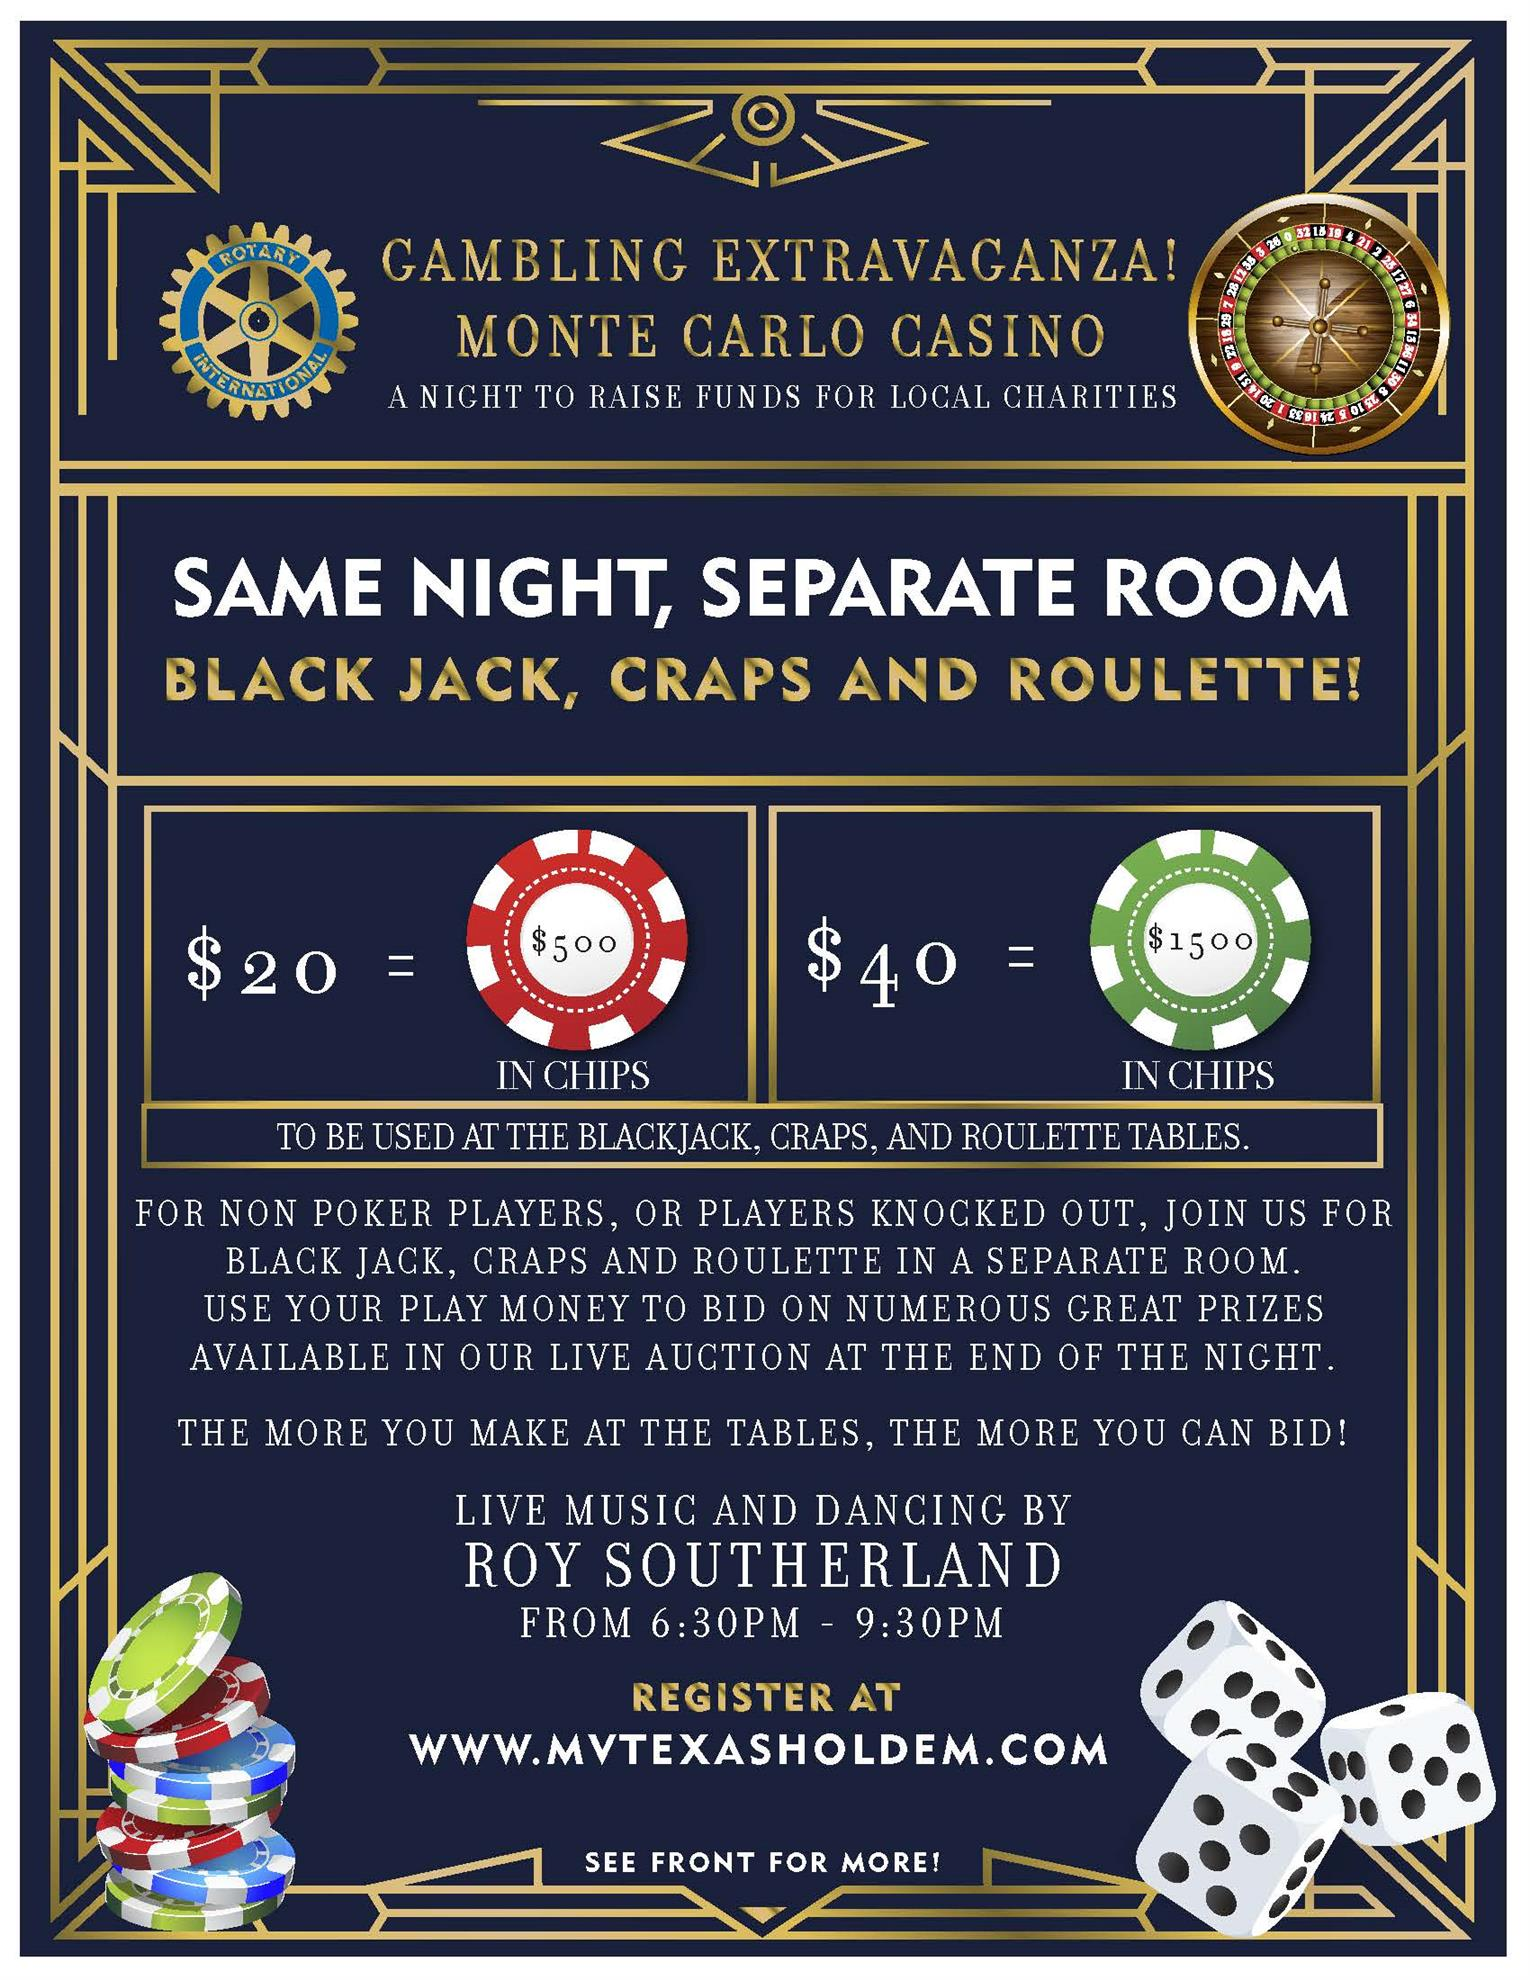 Texas Hold 'Em Flyer Page 2